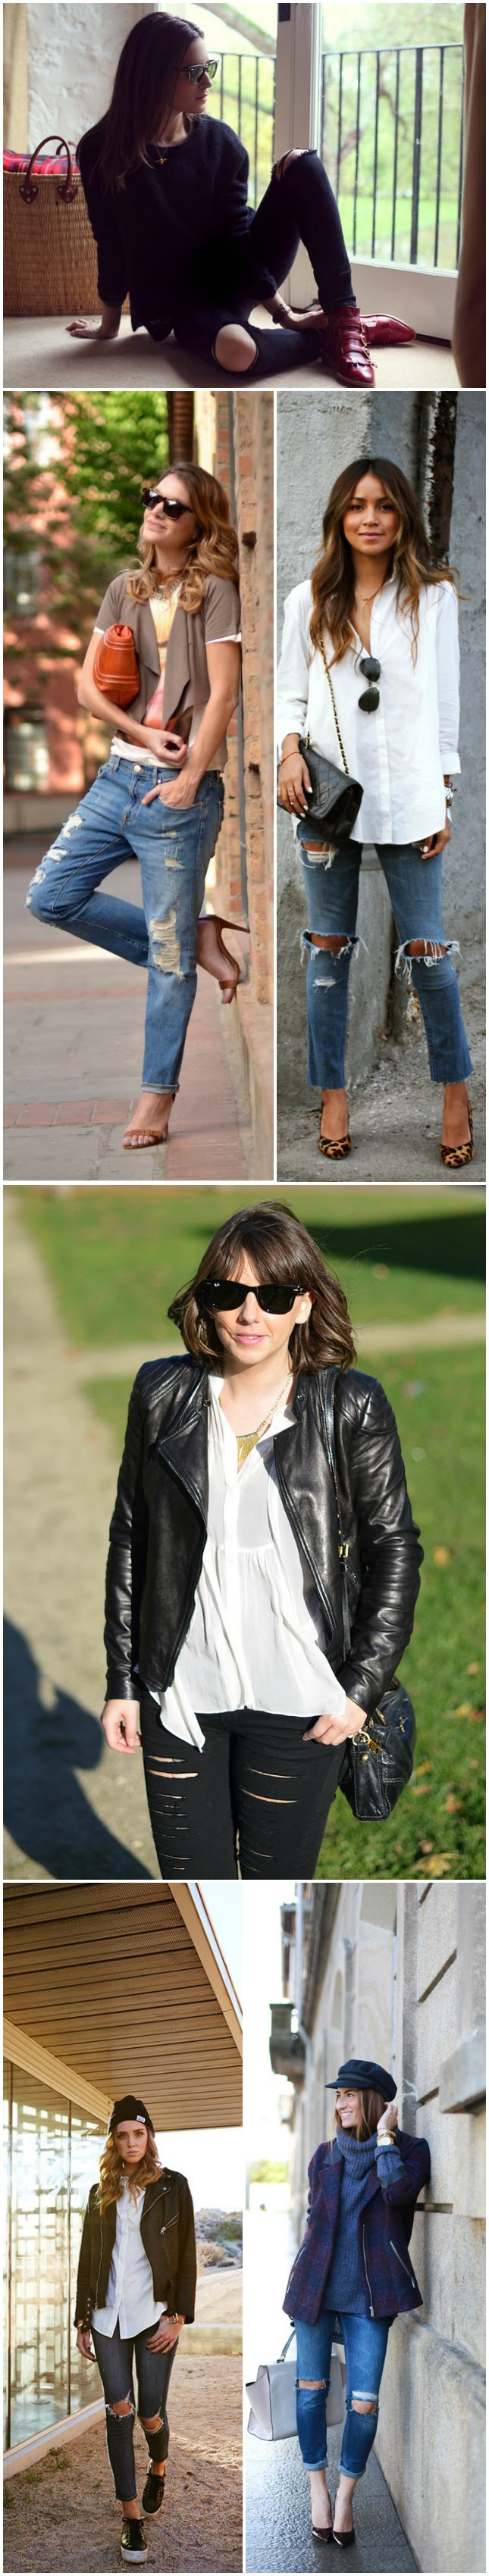 ripped jeans bloggers